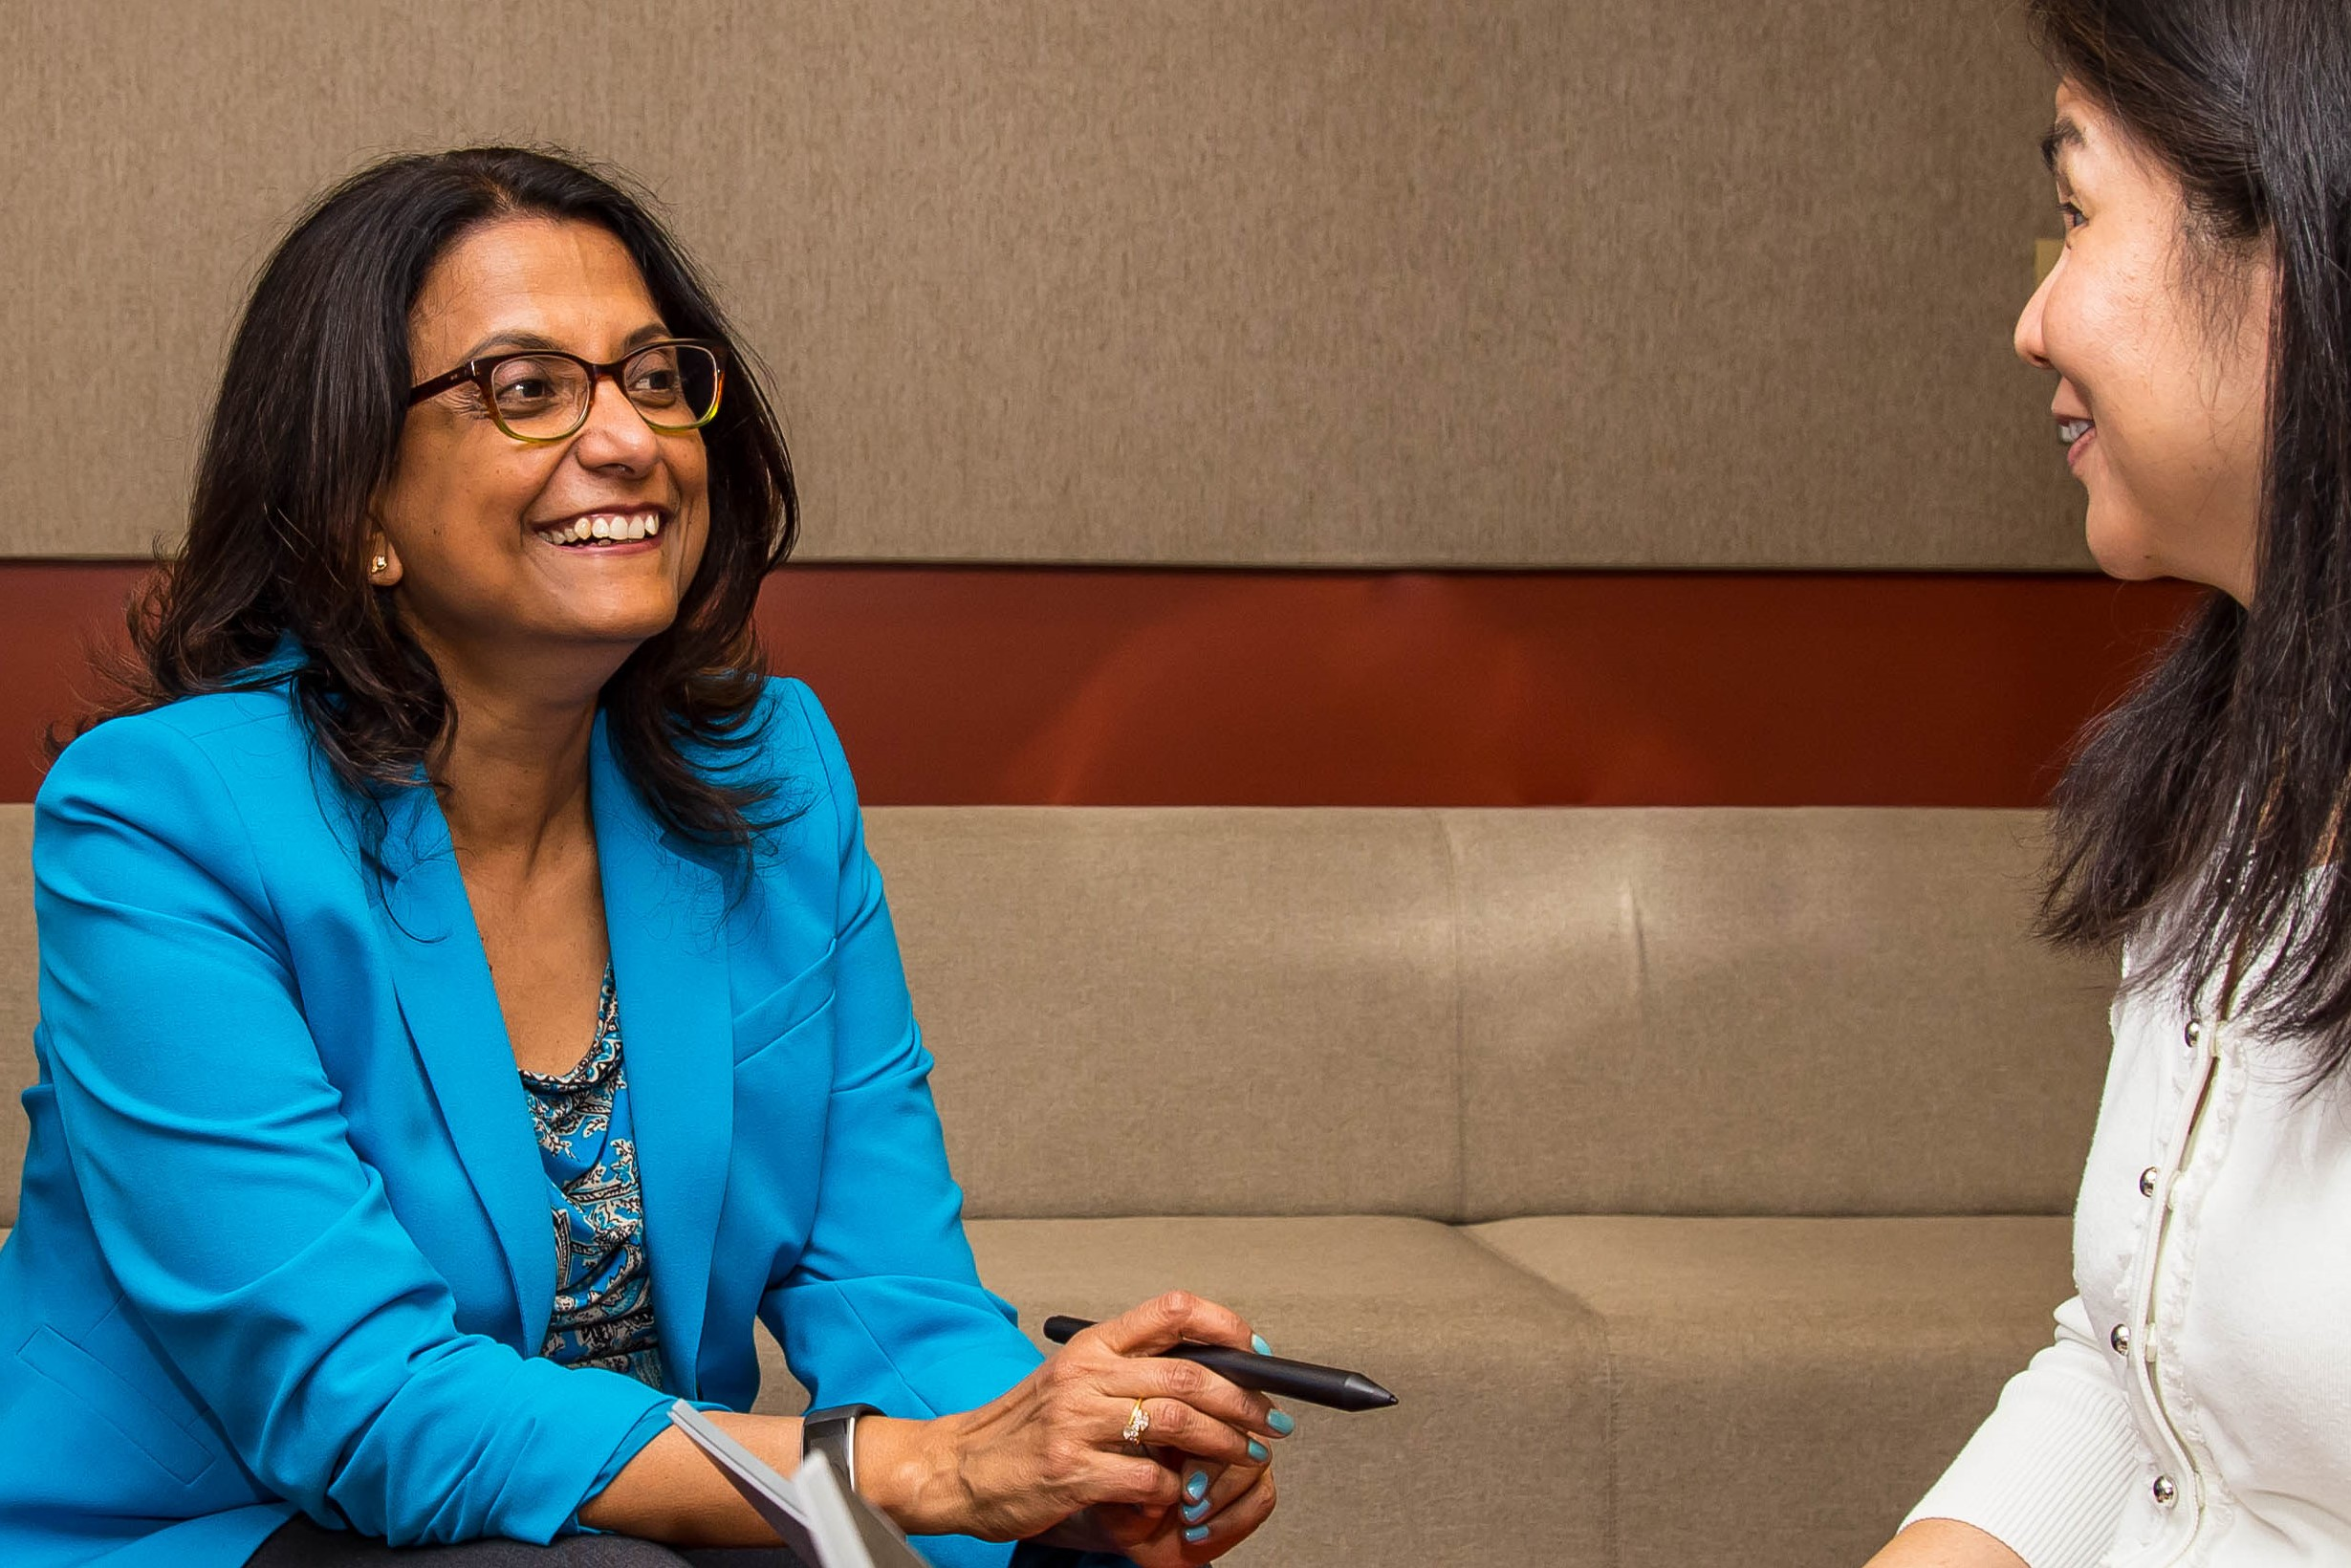 Sarmila Basu talks with one of her team members in a meeting room at Microsoft